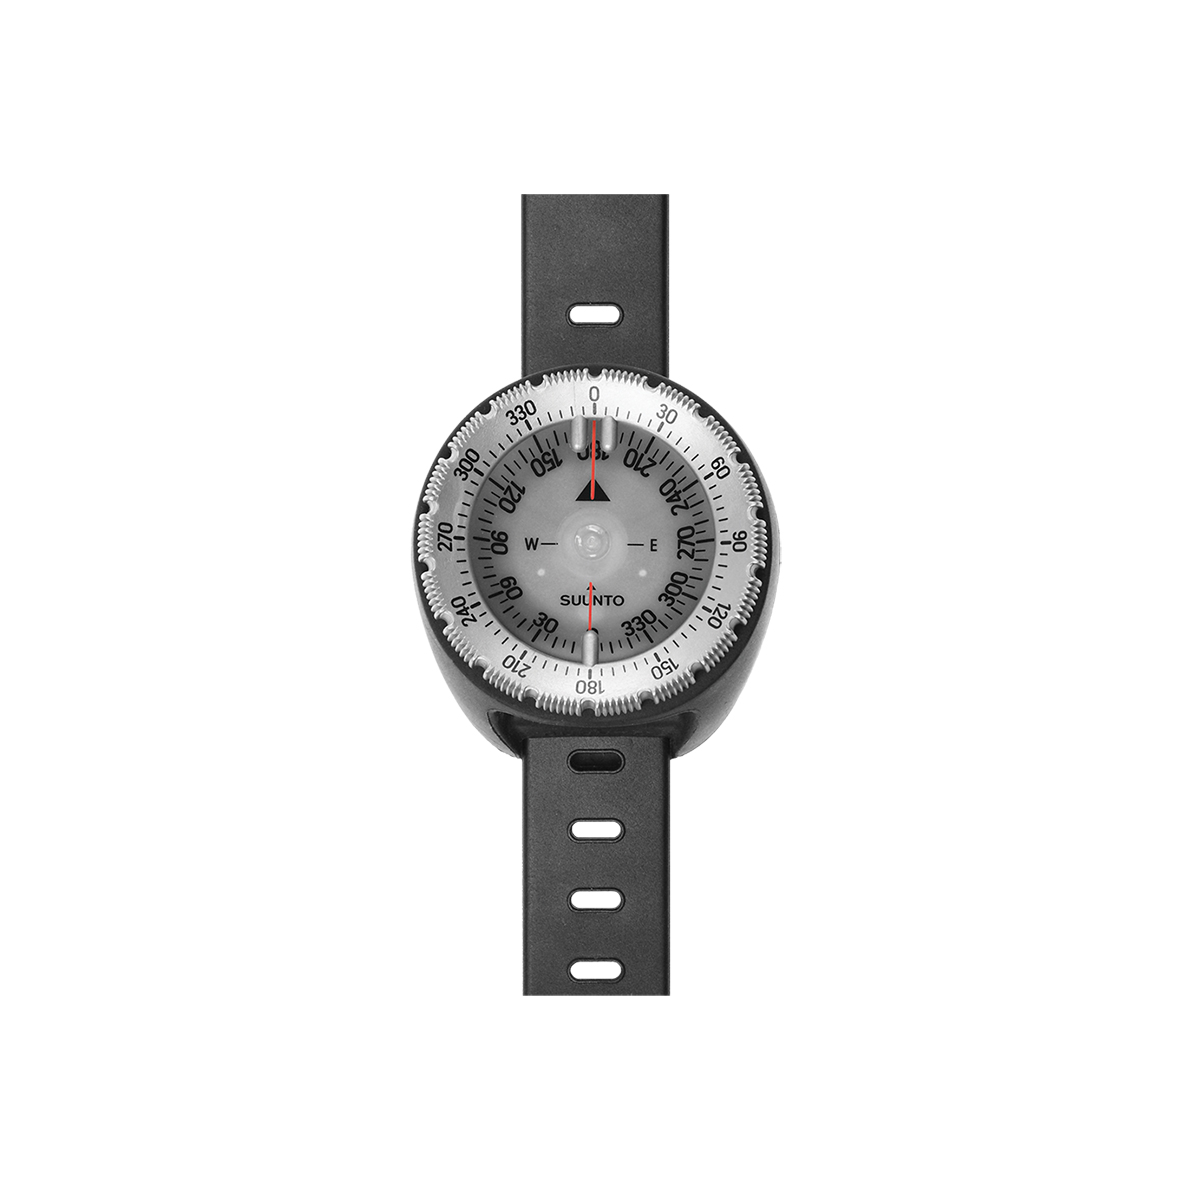 Suunto Sk8 Diving Compass Wrist (stand Alone)